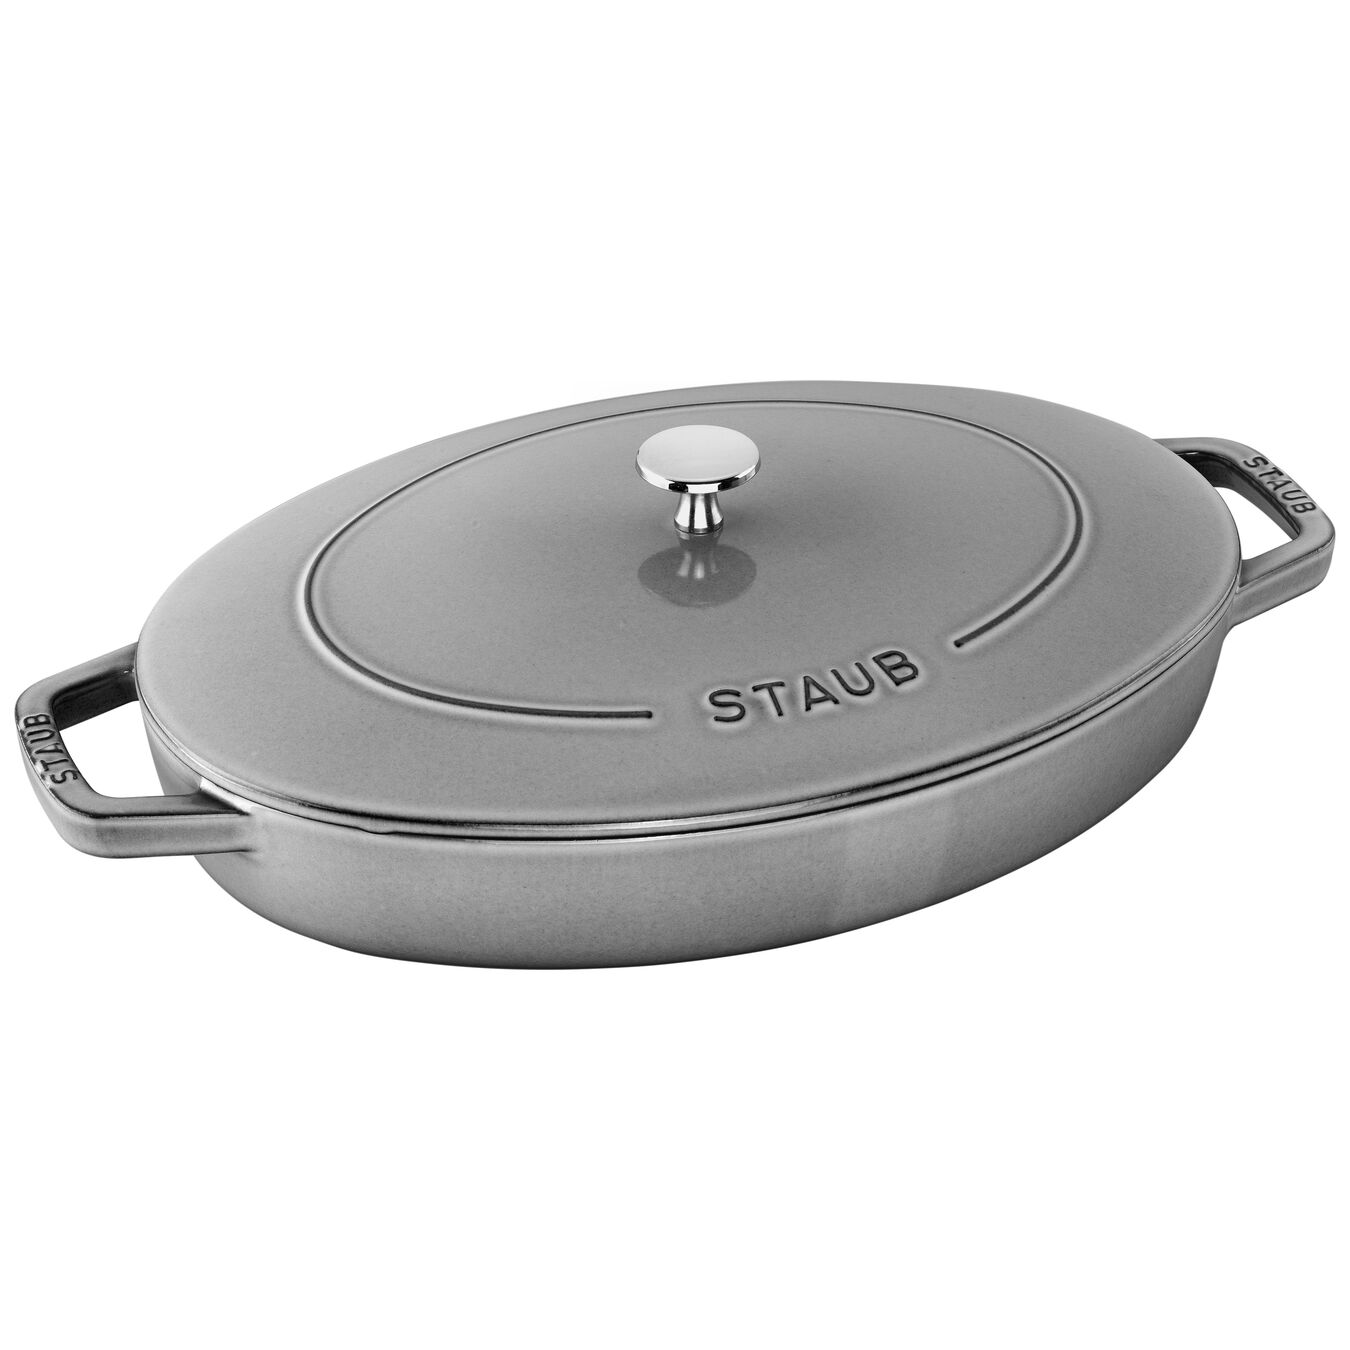 13-inch Cast iron Oven dish with lid,,large 1